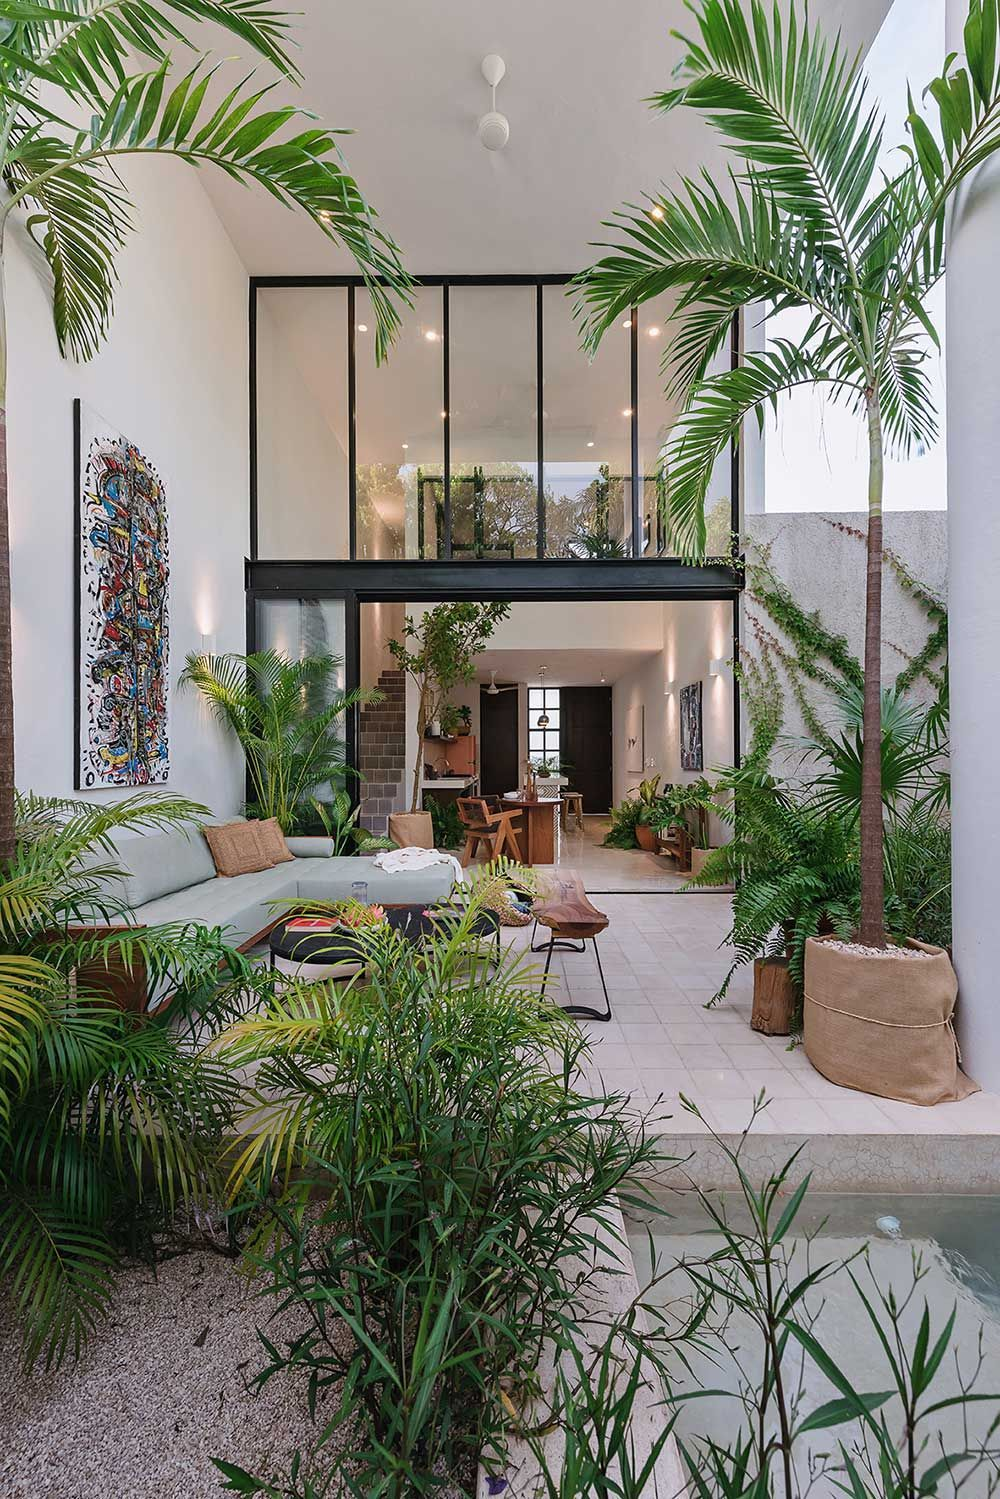 Casa HANNAH in the Yucatan Plays With Double Heights to Feel Larger